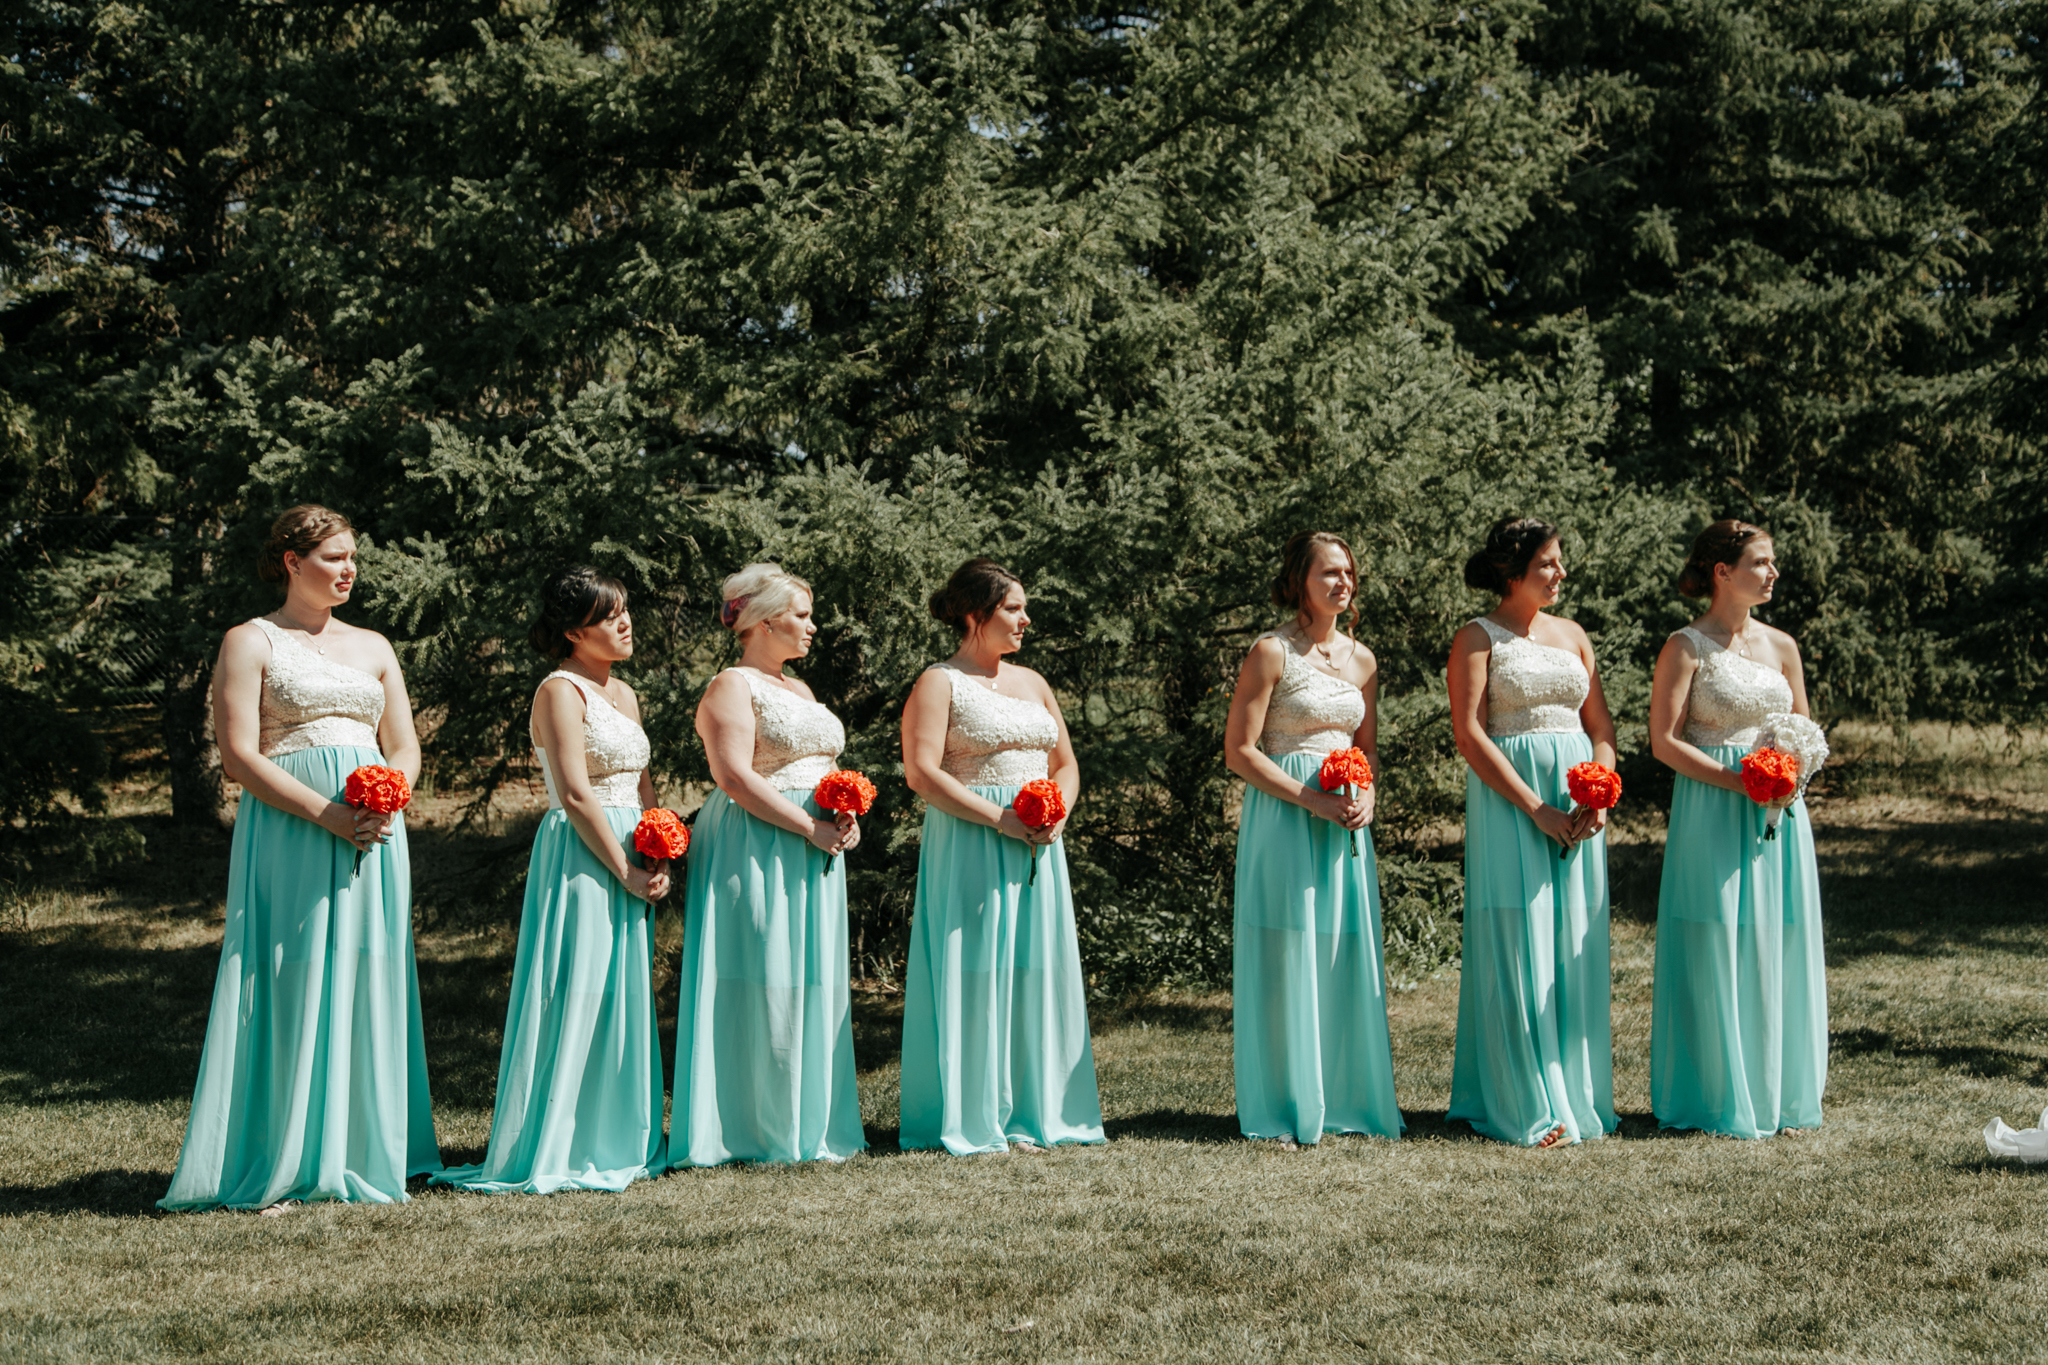 lethbridge-wedding-photography-love-and-be-loved-photographer-sean-sharla-henderson-lake-wedding-image-picture-photo-37.jpg